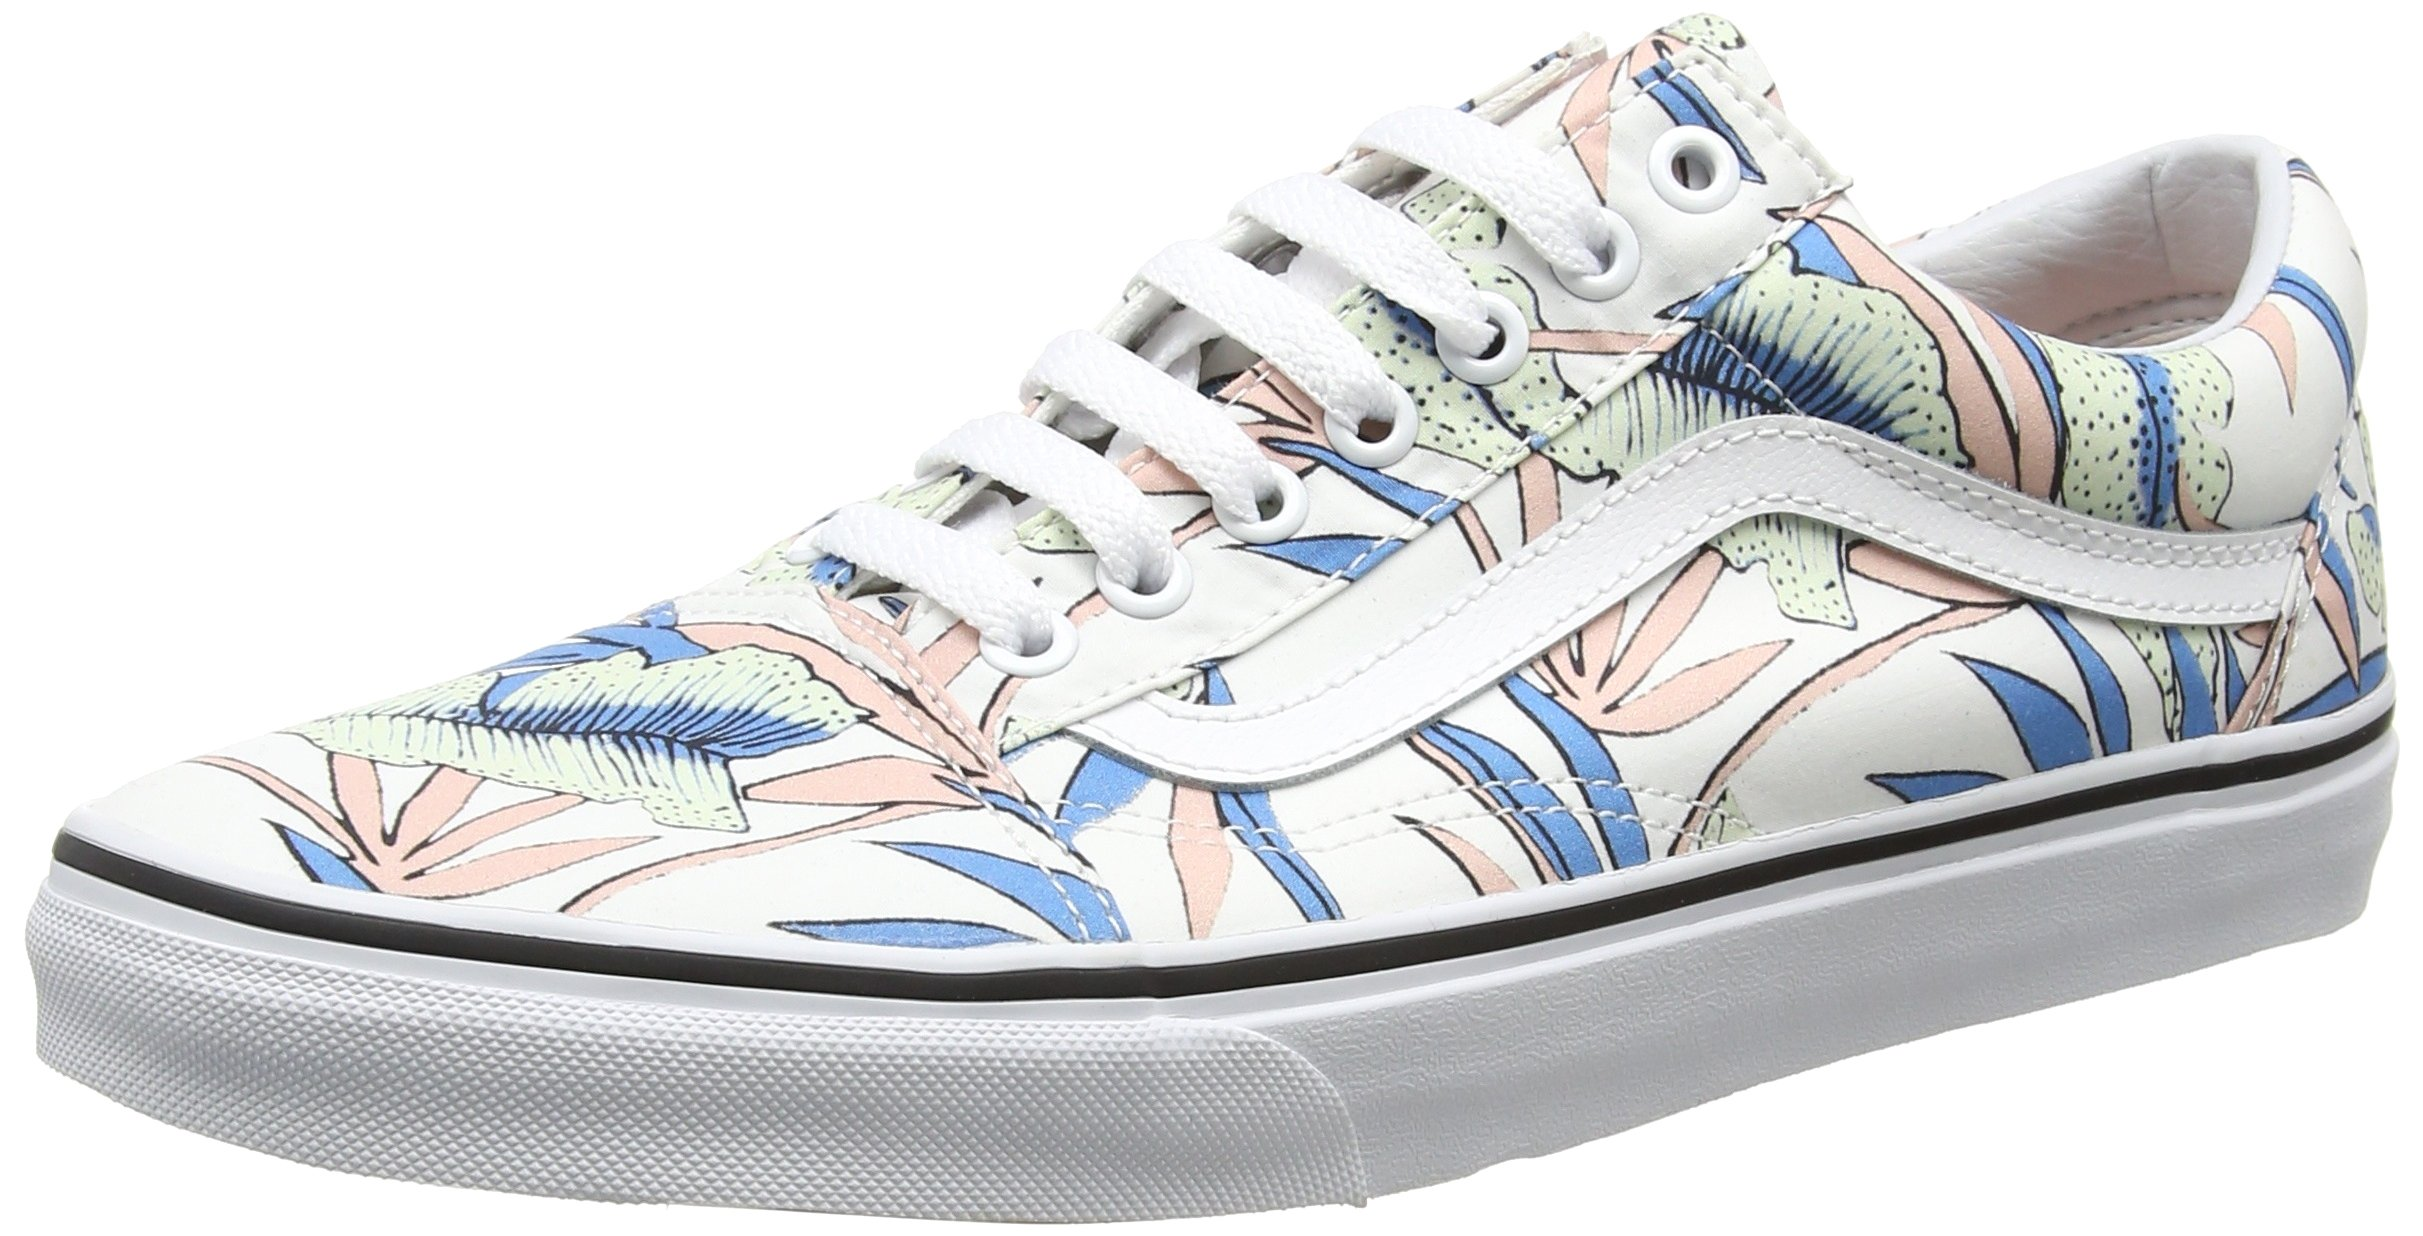 Vans Women's UA Old Skool Low-Top Sneakers, Multicolor (Tropical Leaves True White), 4 UK 36 1/2 EU